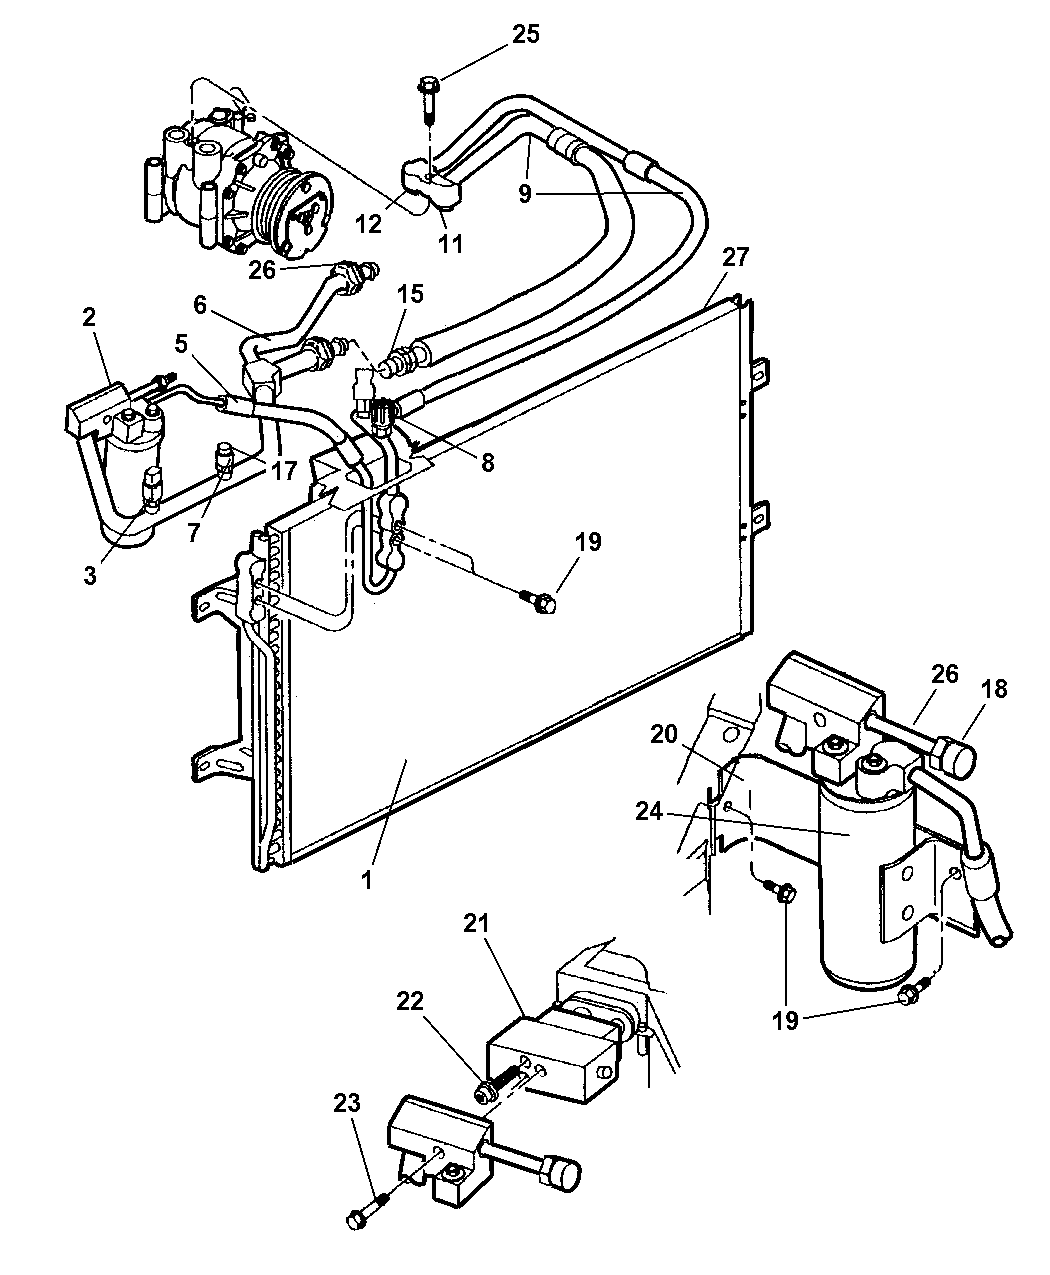 The Illustration Above Is A Simple Air Conditioning Schematic That I